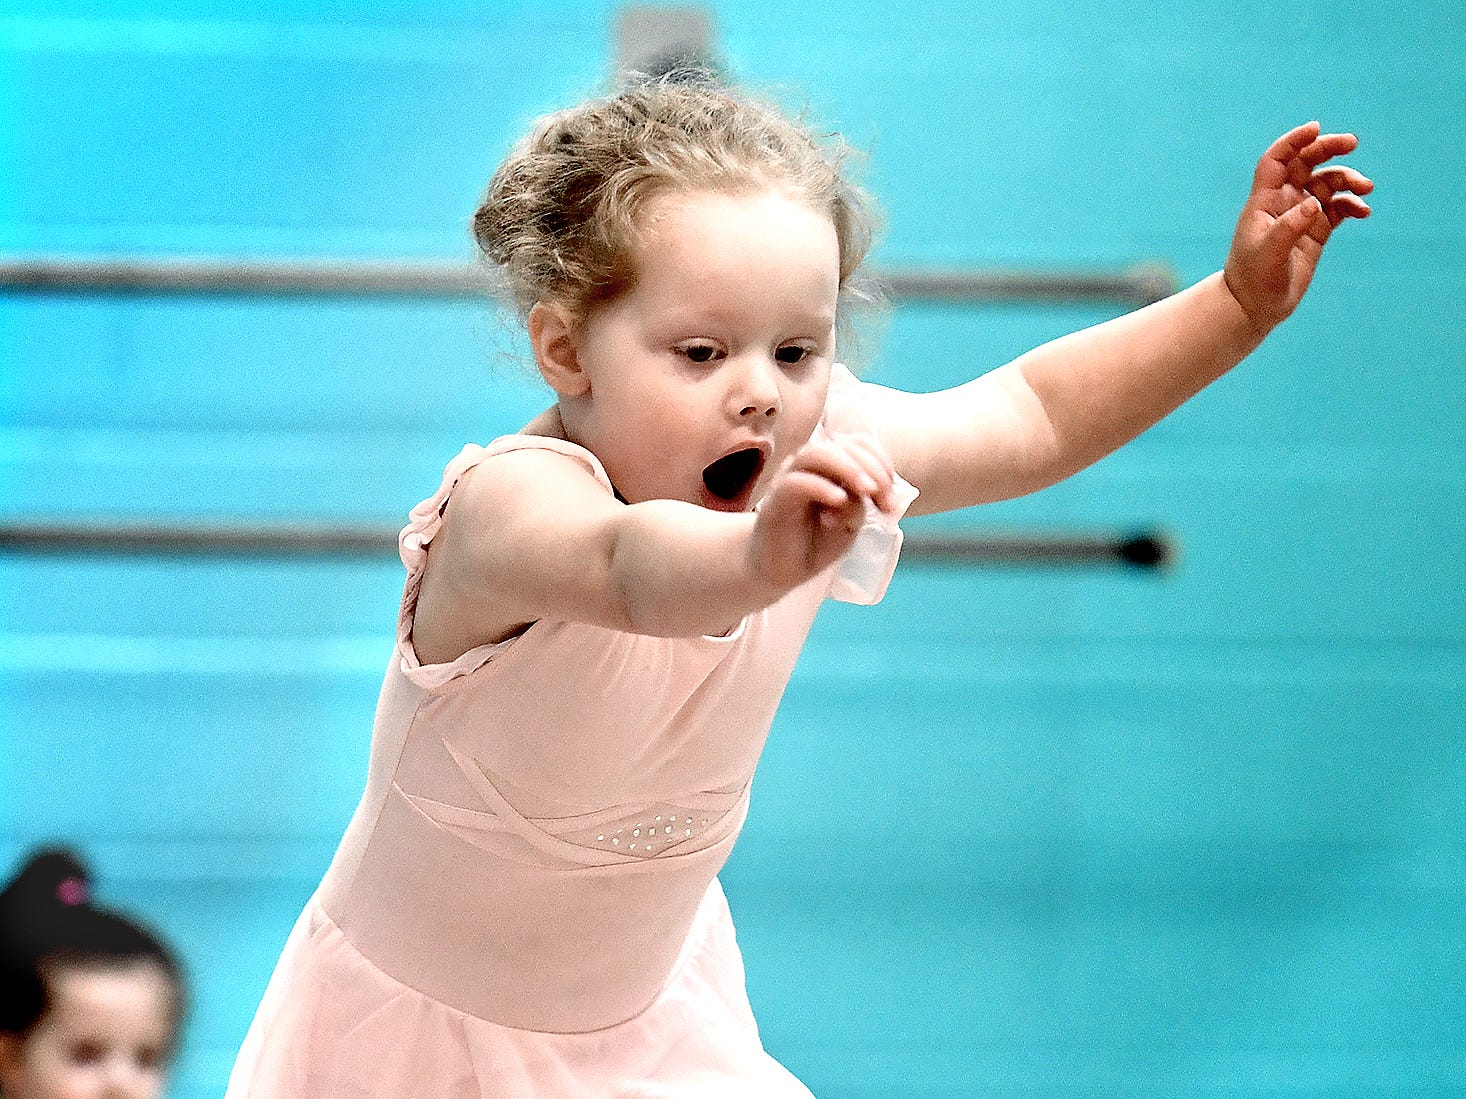 Miah Zangara, 2, of New Salem, makes a jump during the Twinkle Babies class at Greater York Dance Thursday, April 4, 2019. The four-week program, for children aged 2 to 4, is part of the Twinkle Star Dance Program for early childhood dancers. Bill Kalina photo